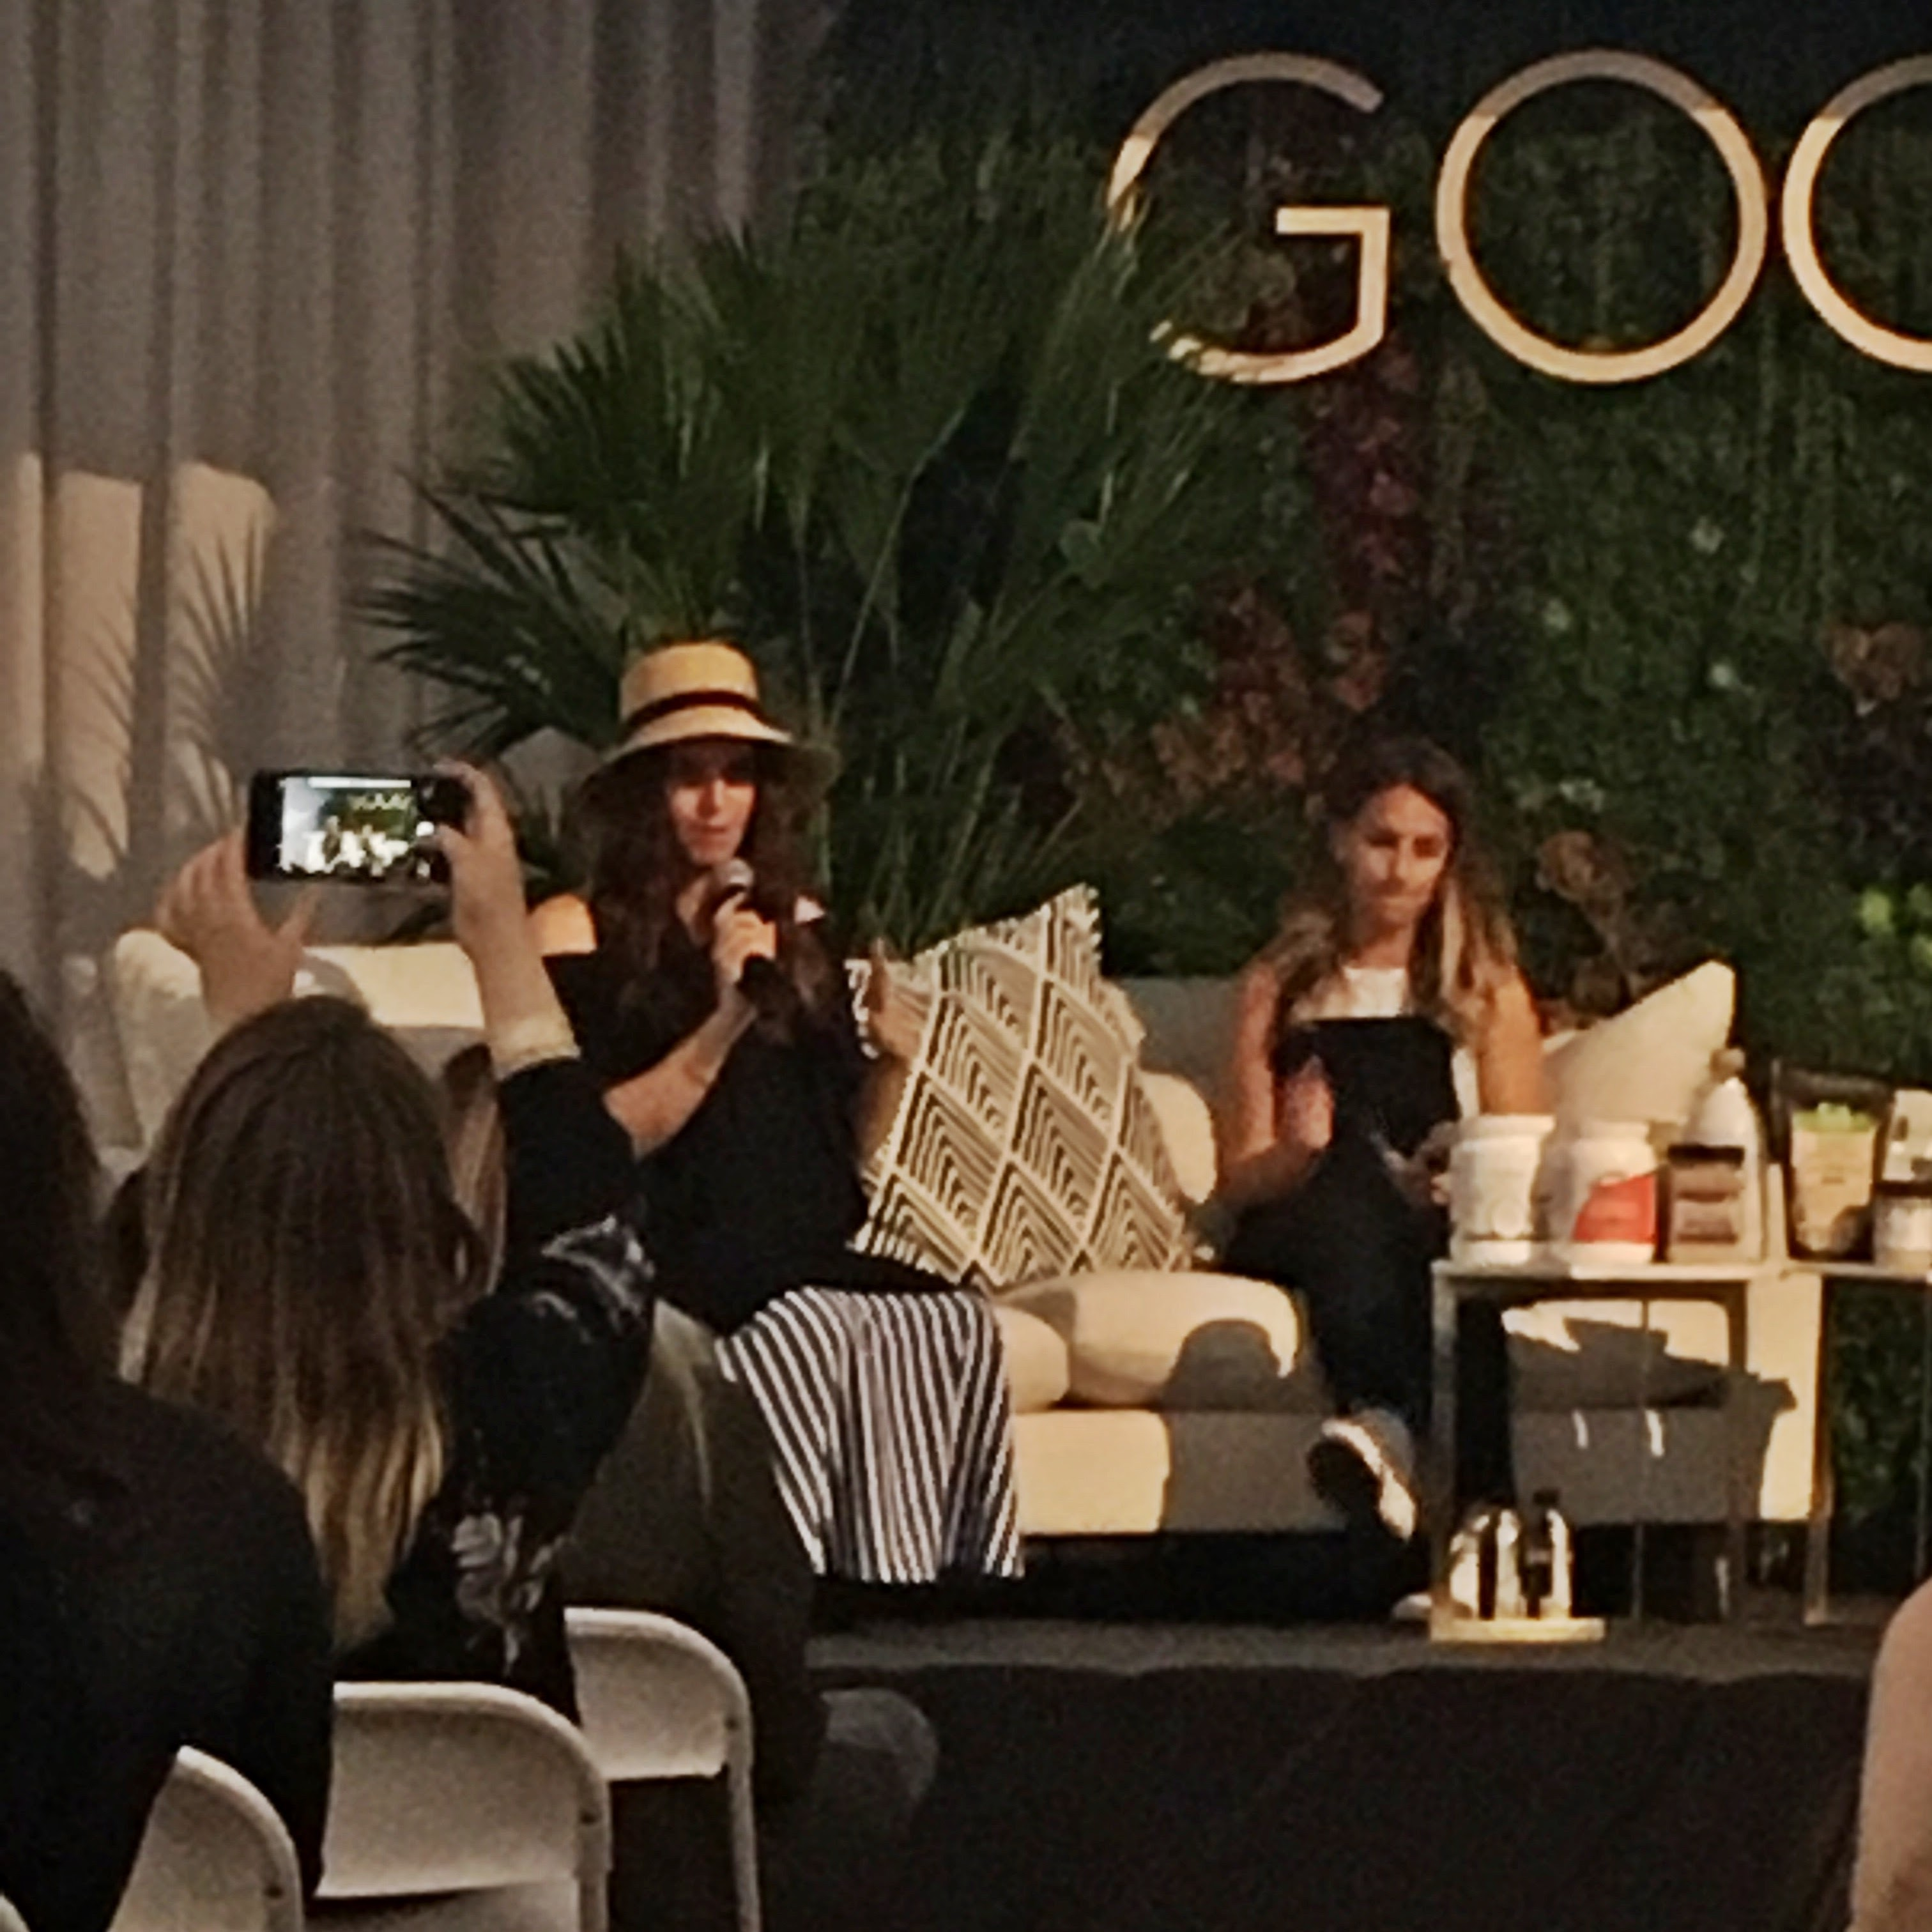 My Experience at The Goodfest Wellness Festival in Philly